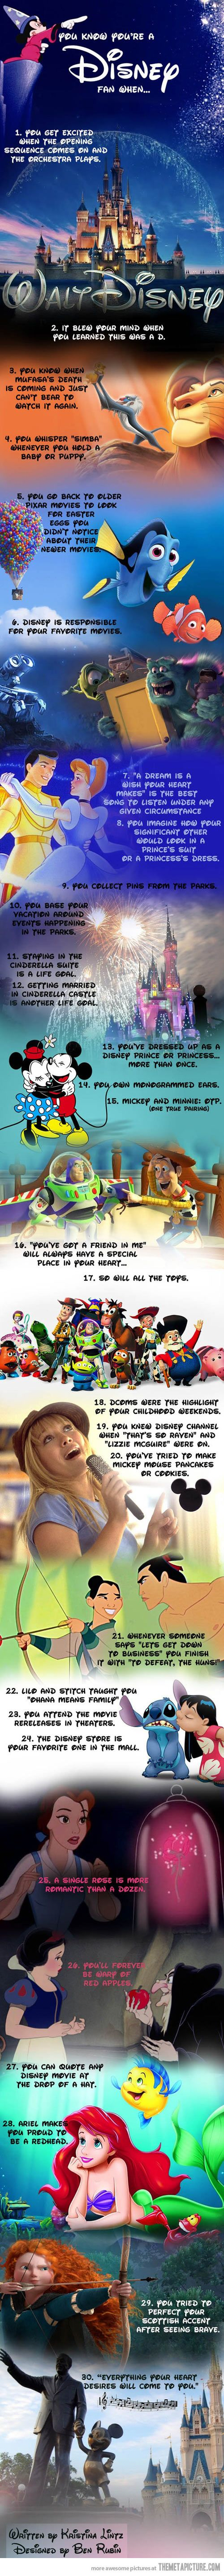 Every one of those is me I can do all that. They say I've got a Disney obsession problem